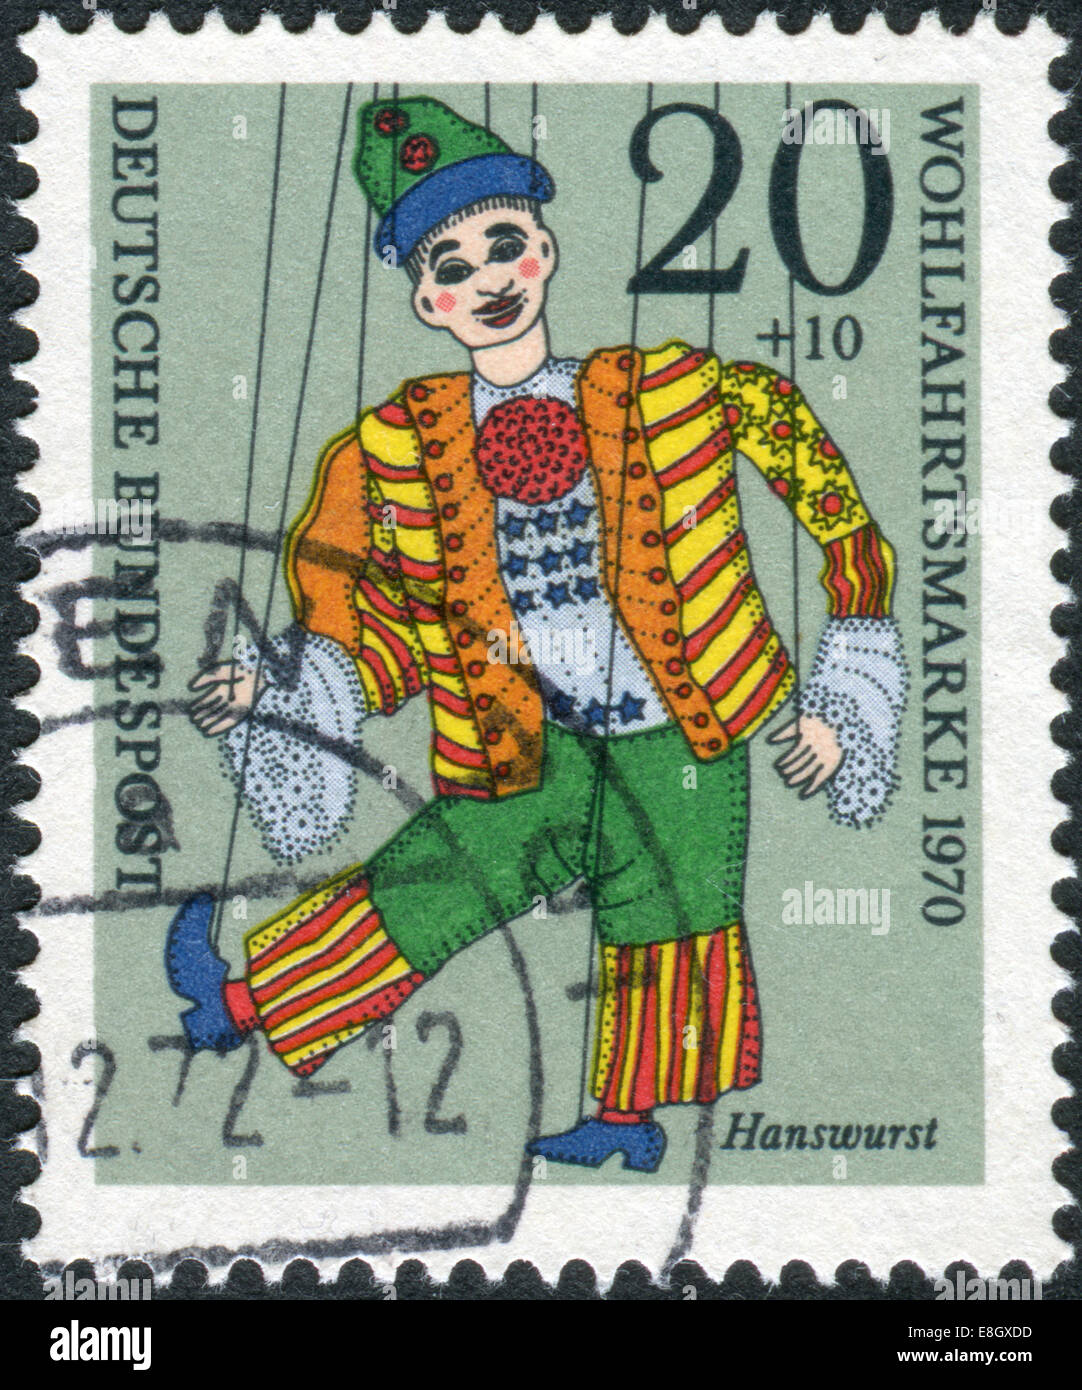 """Postage stamp printed in Germany, shows a puppet """"Hanswurst"""" from the collection of puppet theater in Munich Stock Photo"""